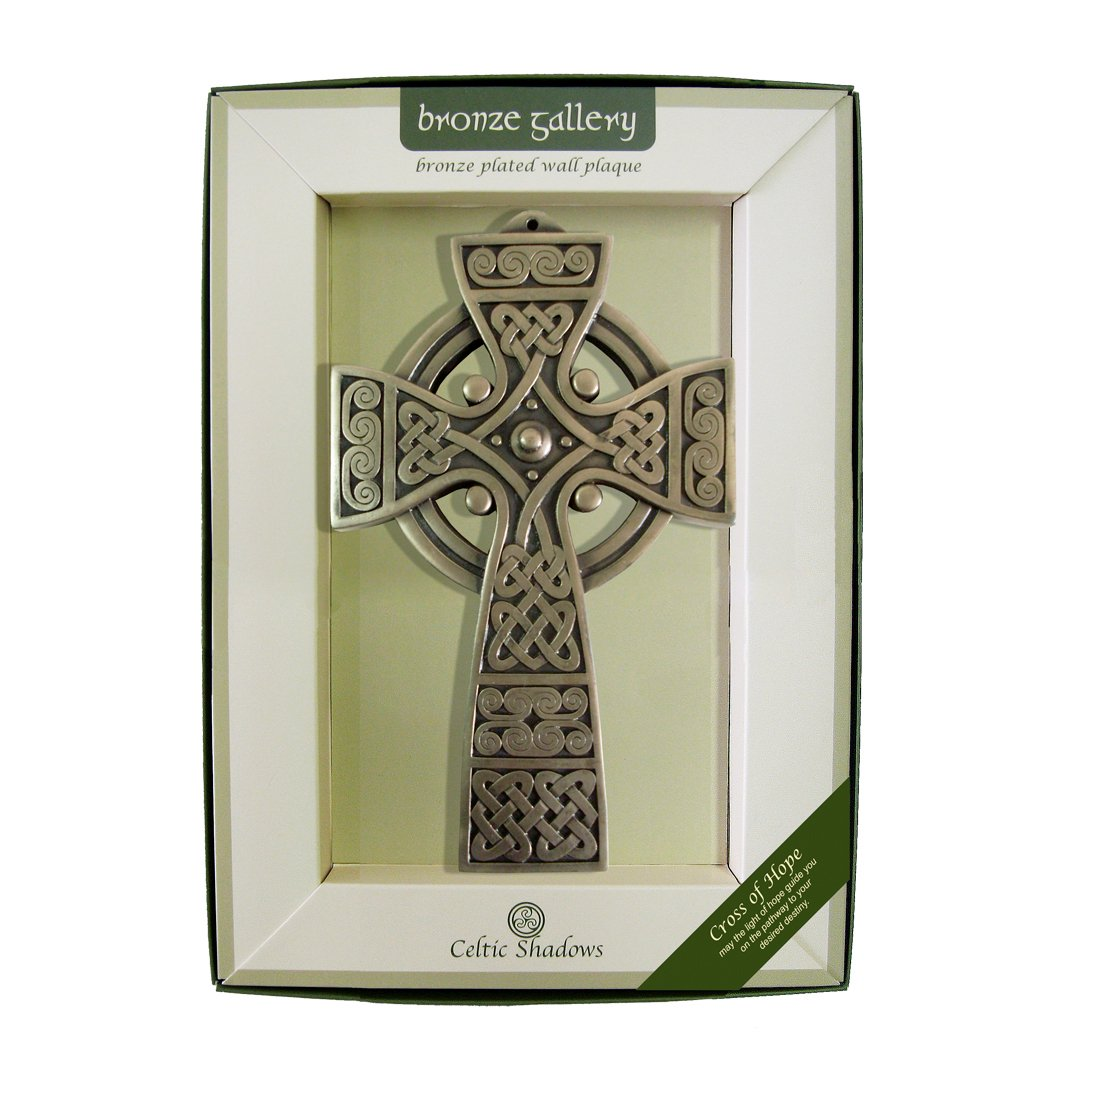 Irish Bronze Plated Wall Plaque with Cross of Hope Design by Royal Tara